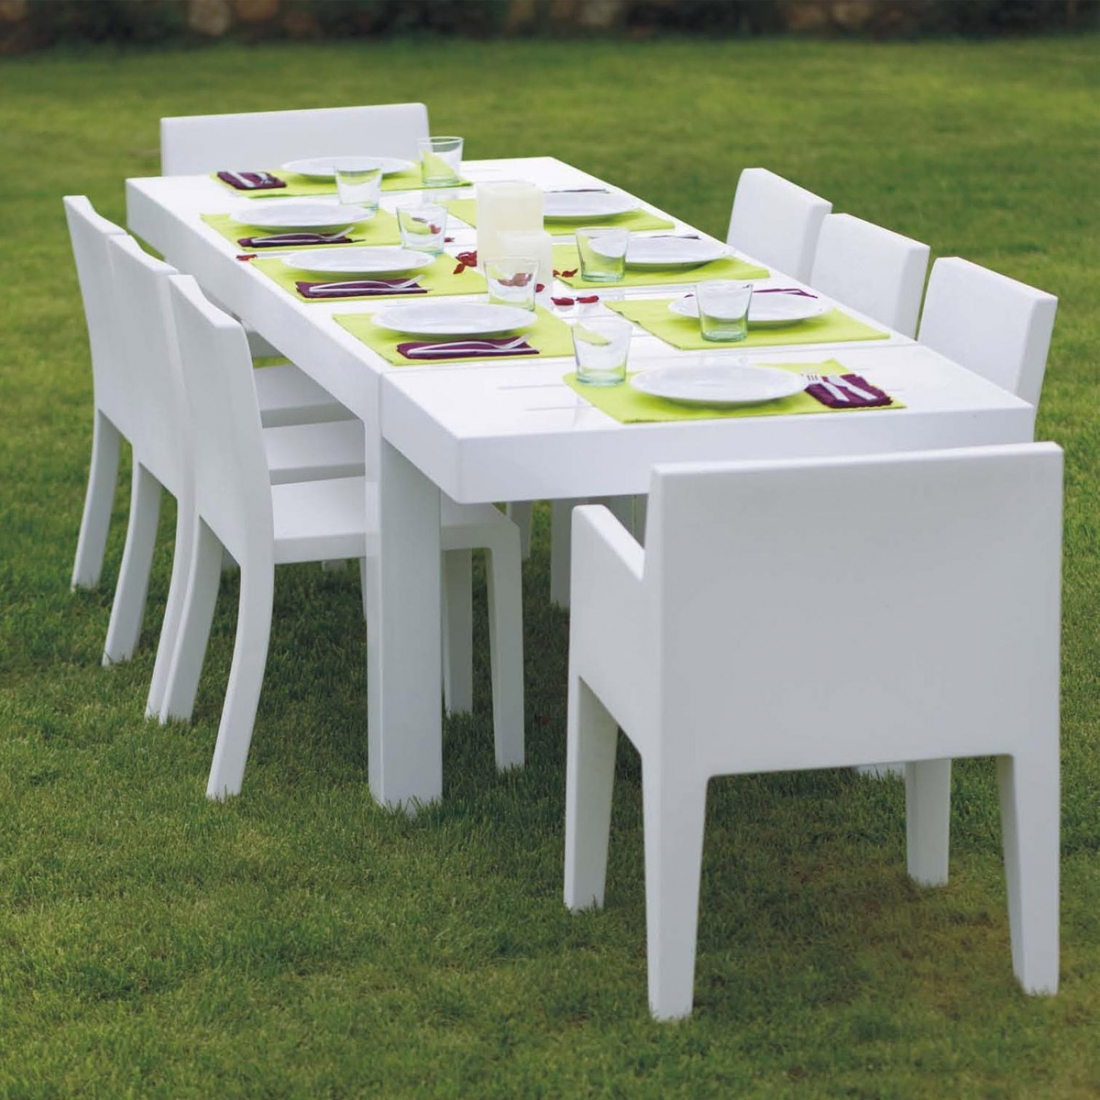 Table de jardin design 10 personnes jut par vondom - Table de jardin design italien ...